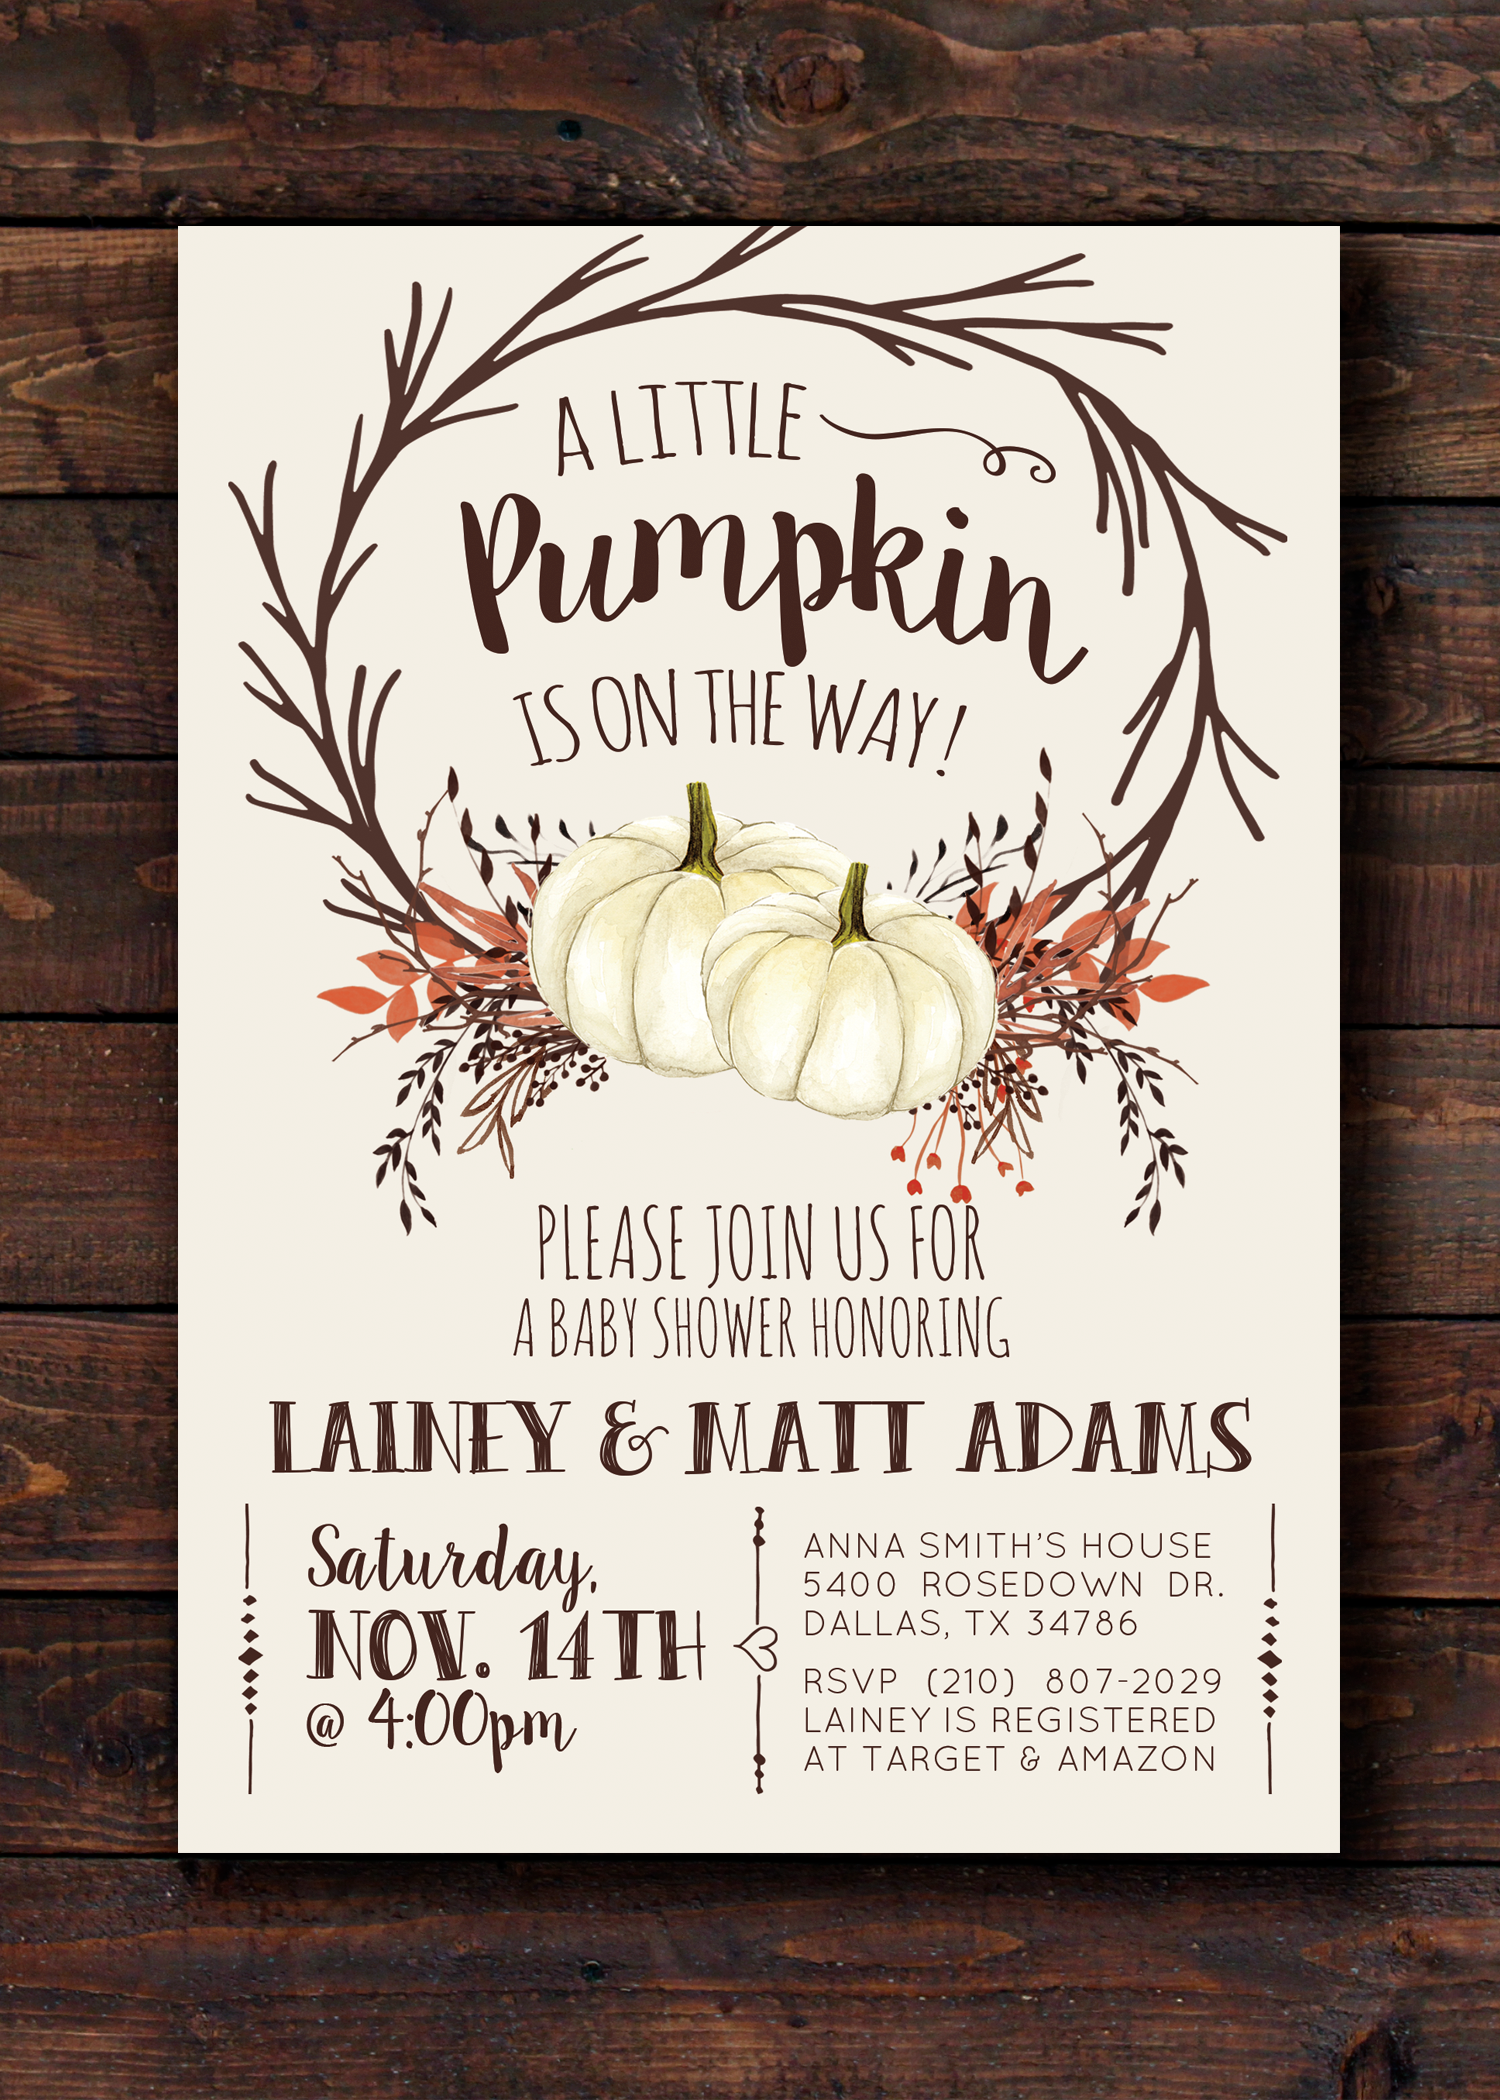 White Pumpkin Baby Shower Invitation Invite for Fall Featuring